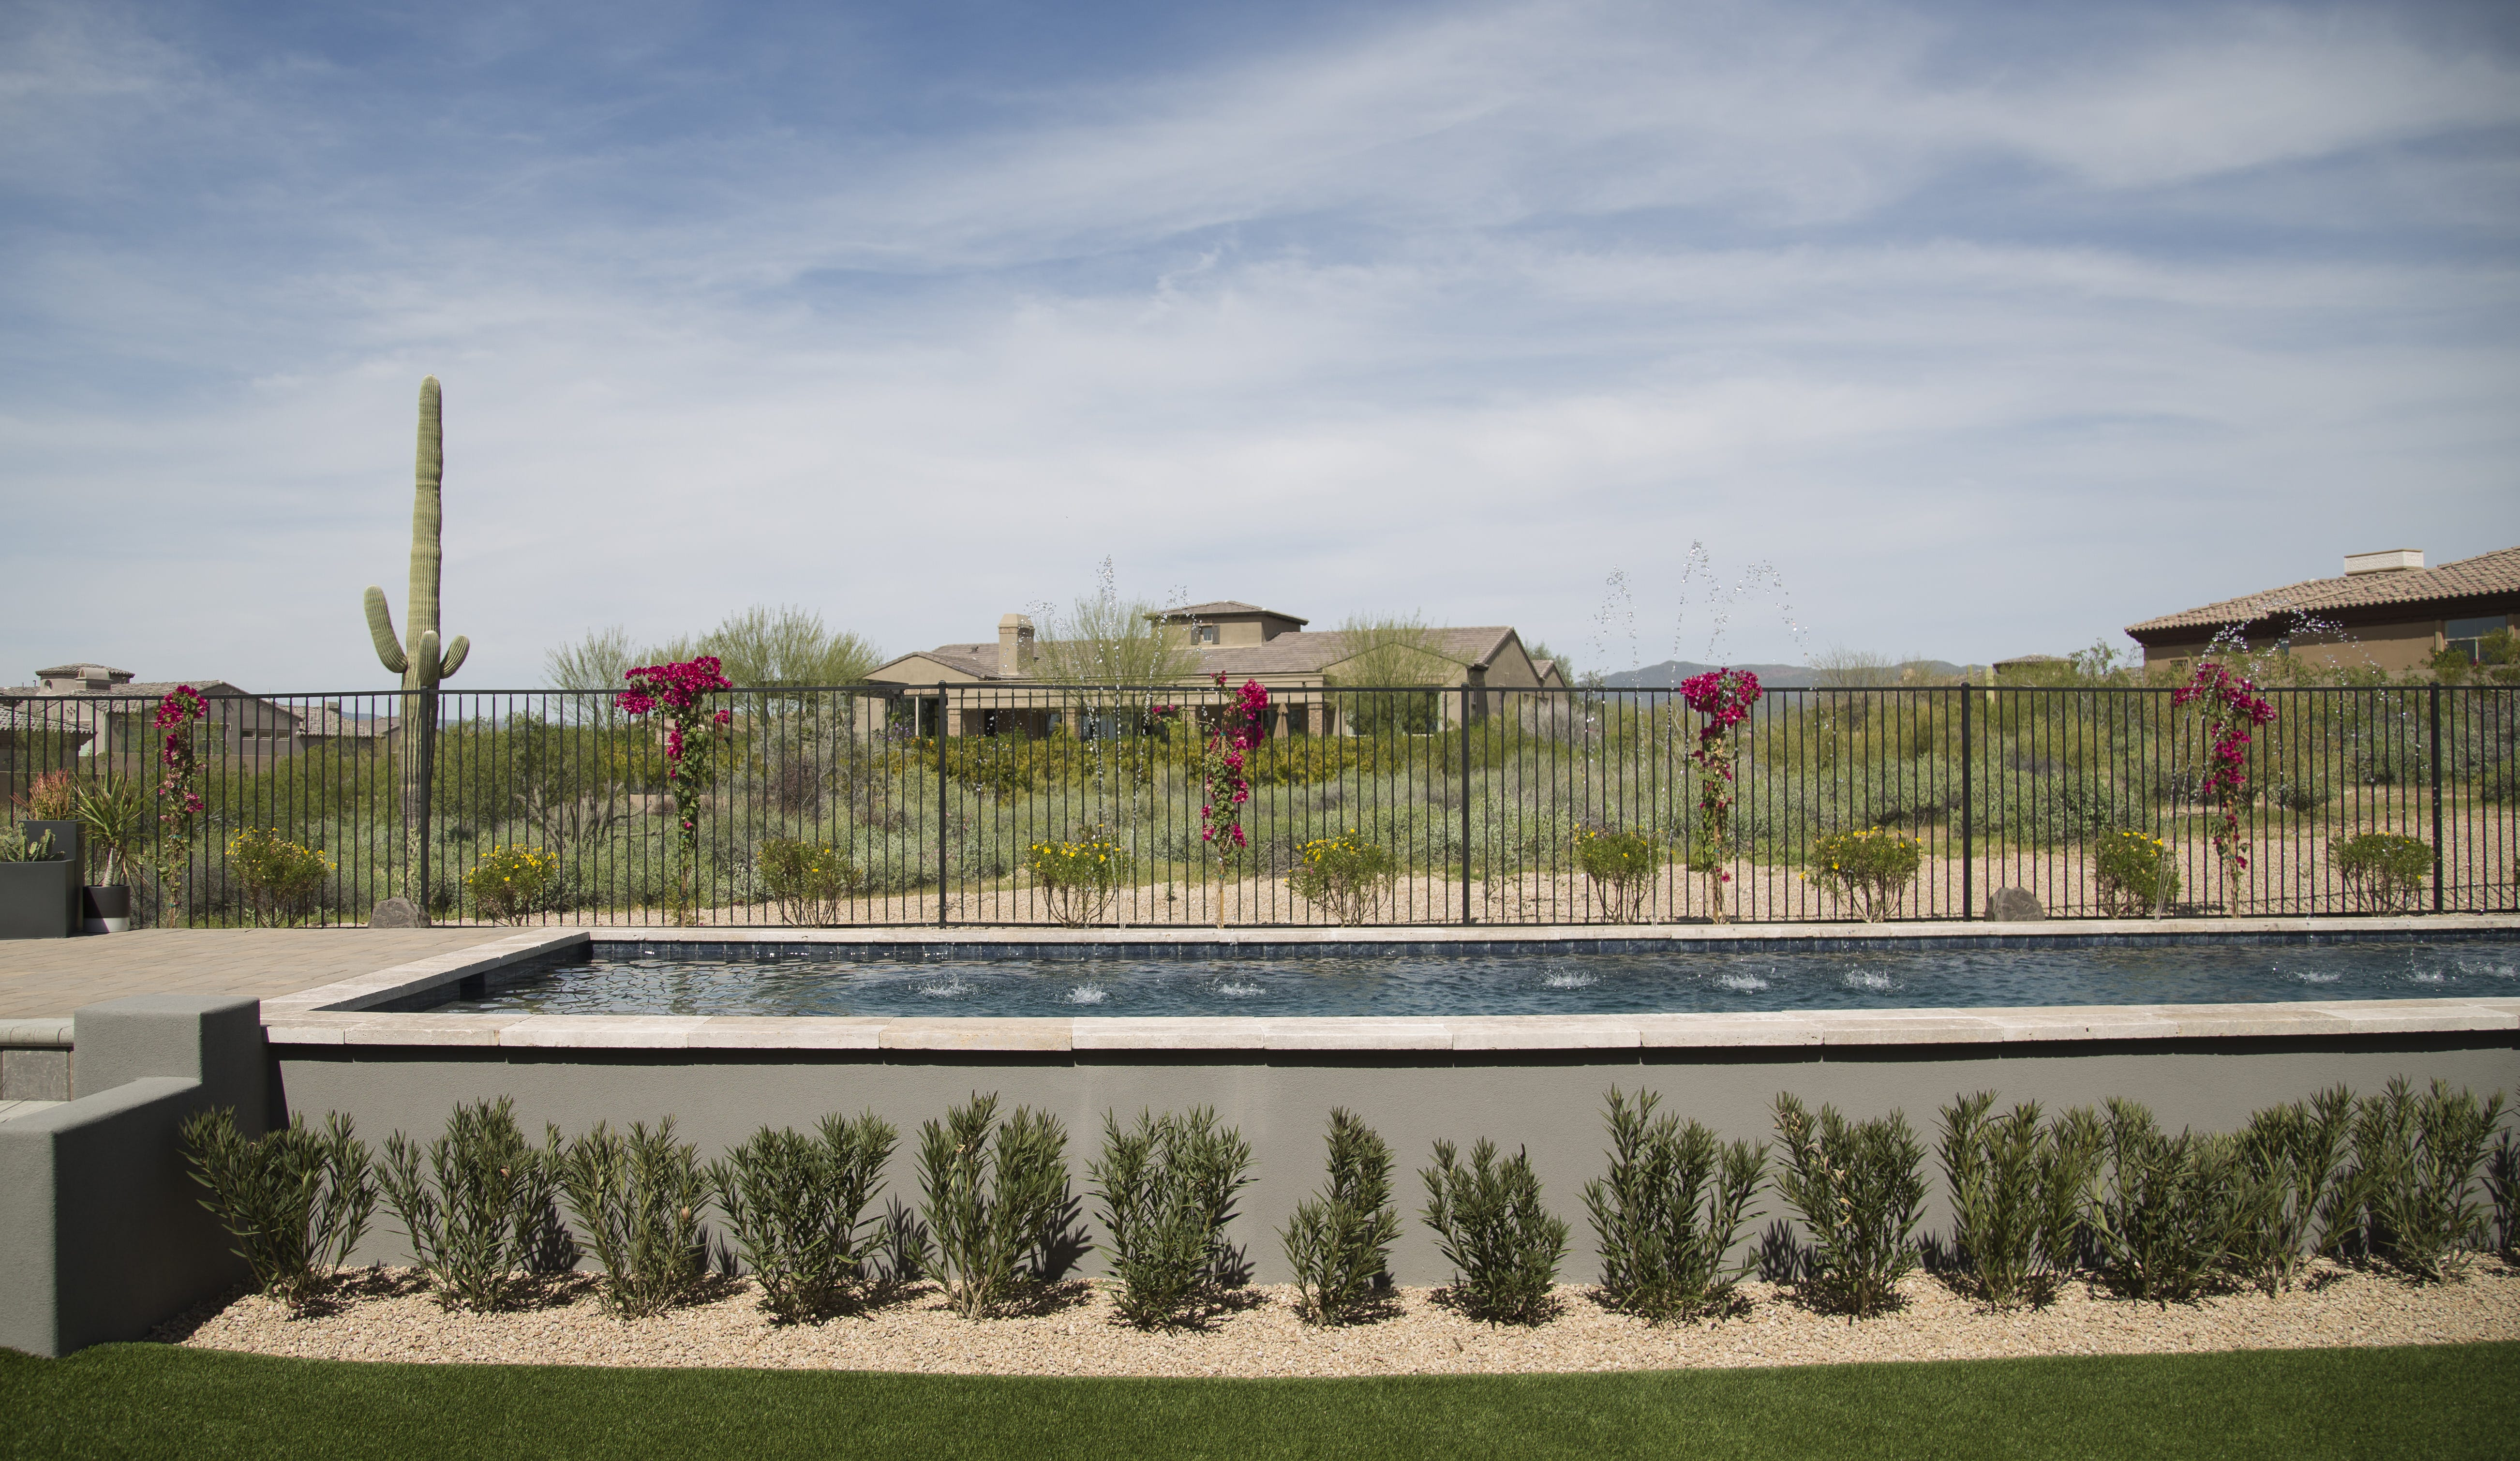 hgtvu0027s smart home sits finished in scottsdale on march 15 the smart home is part of a sweepstakes where contestants can win the home a mercedes suv - Hgtv Smart Home Sweepstakes